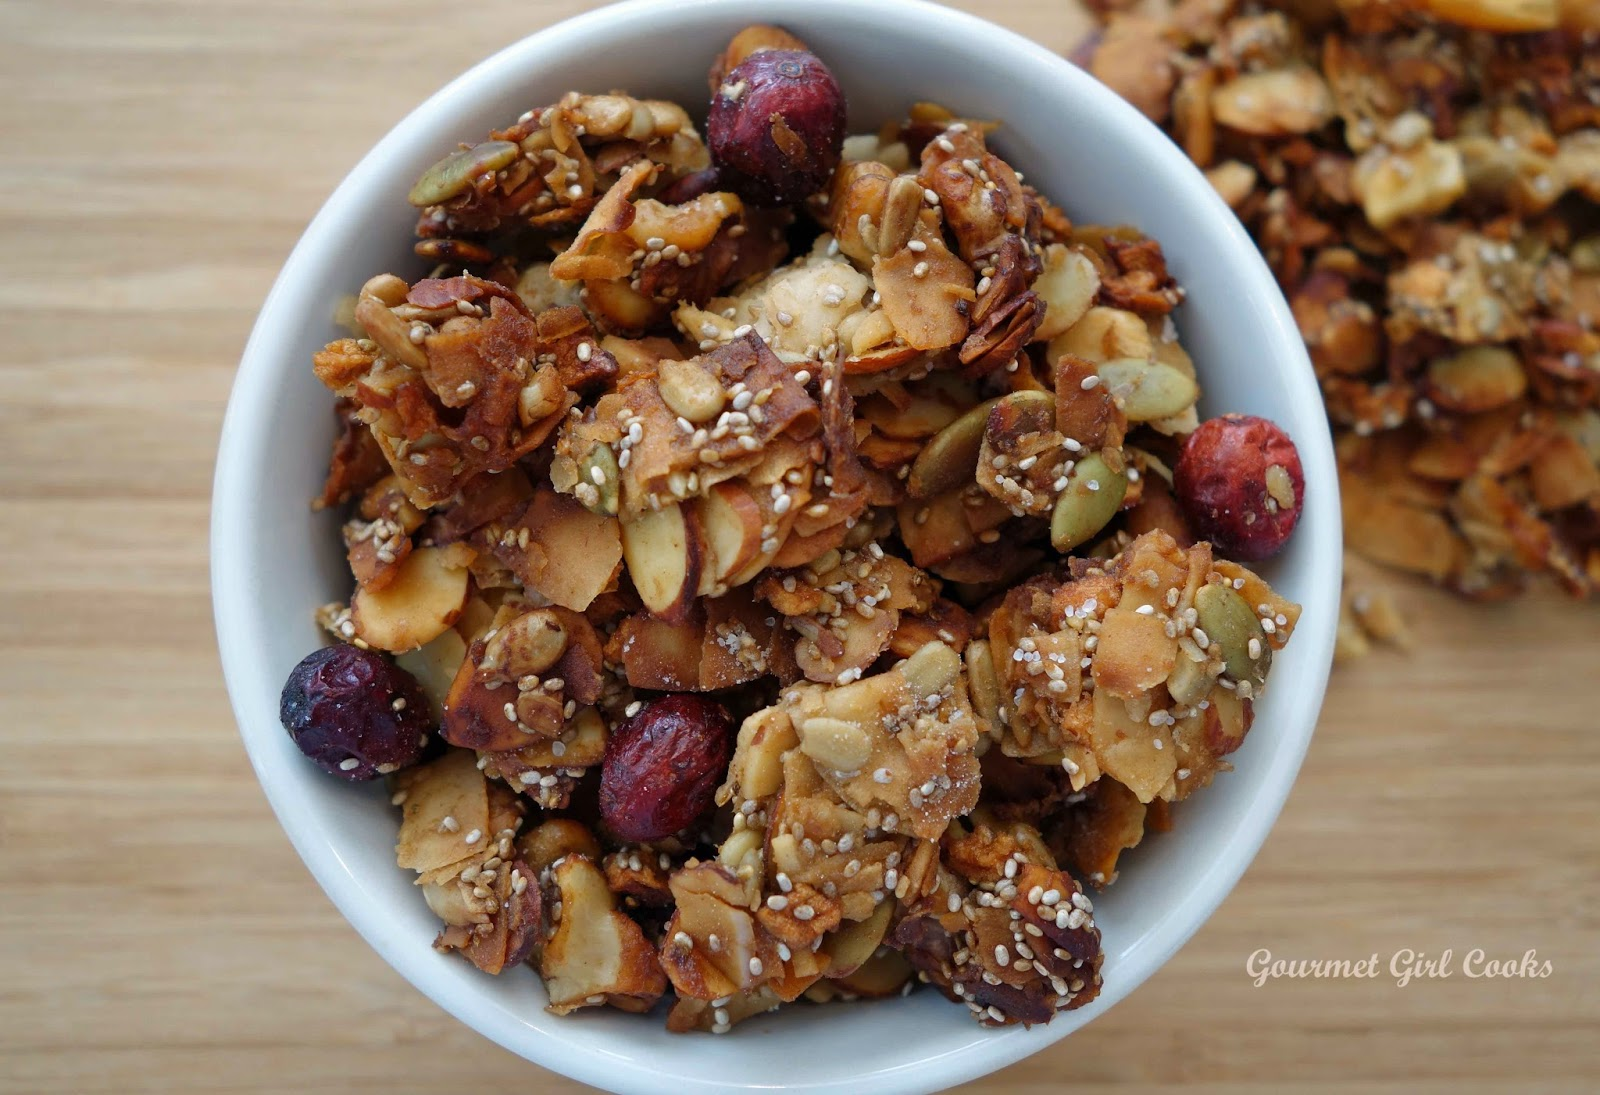 ... Girl Cooks: Coconutty Cranberry-Apple Granola -- 100% Grain Free